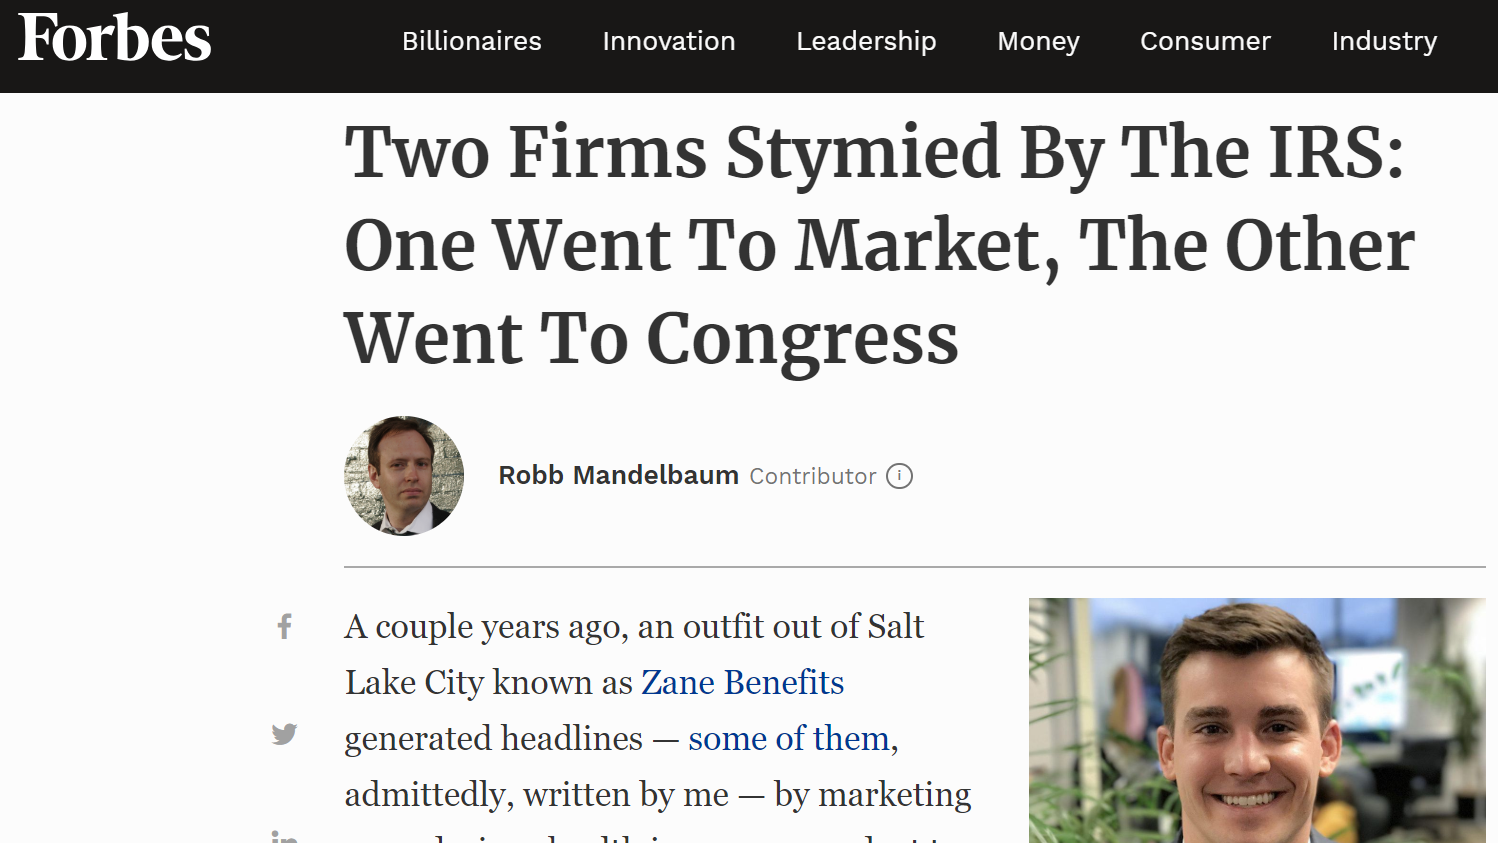 Two Firms Stymied By The IRS: One Went To Market, The Other Went To Congress